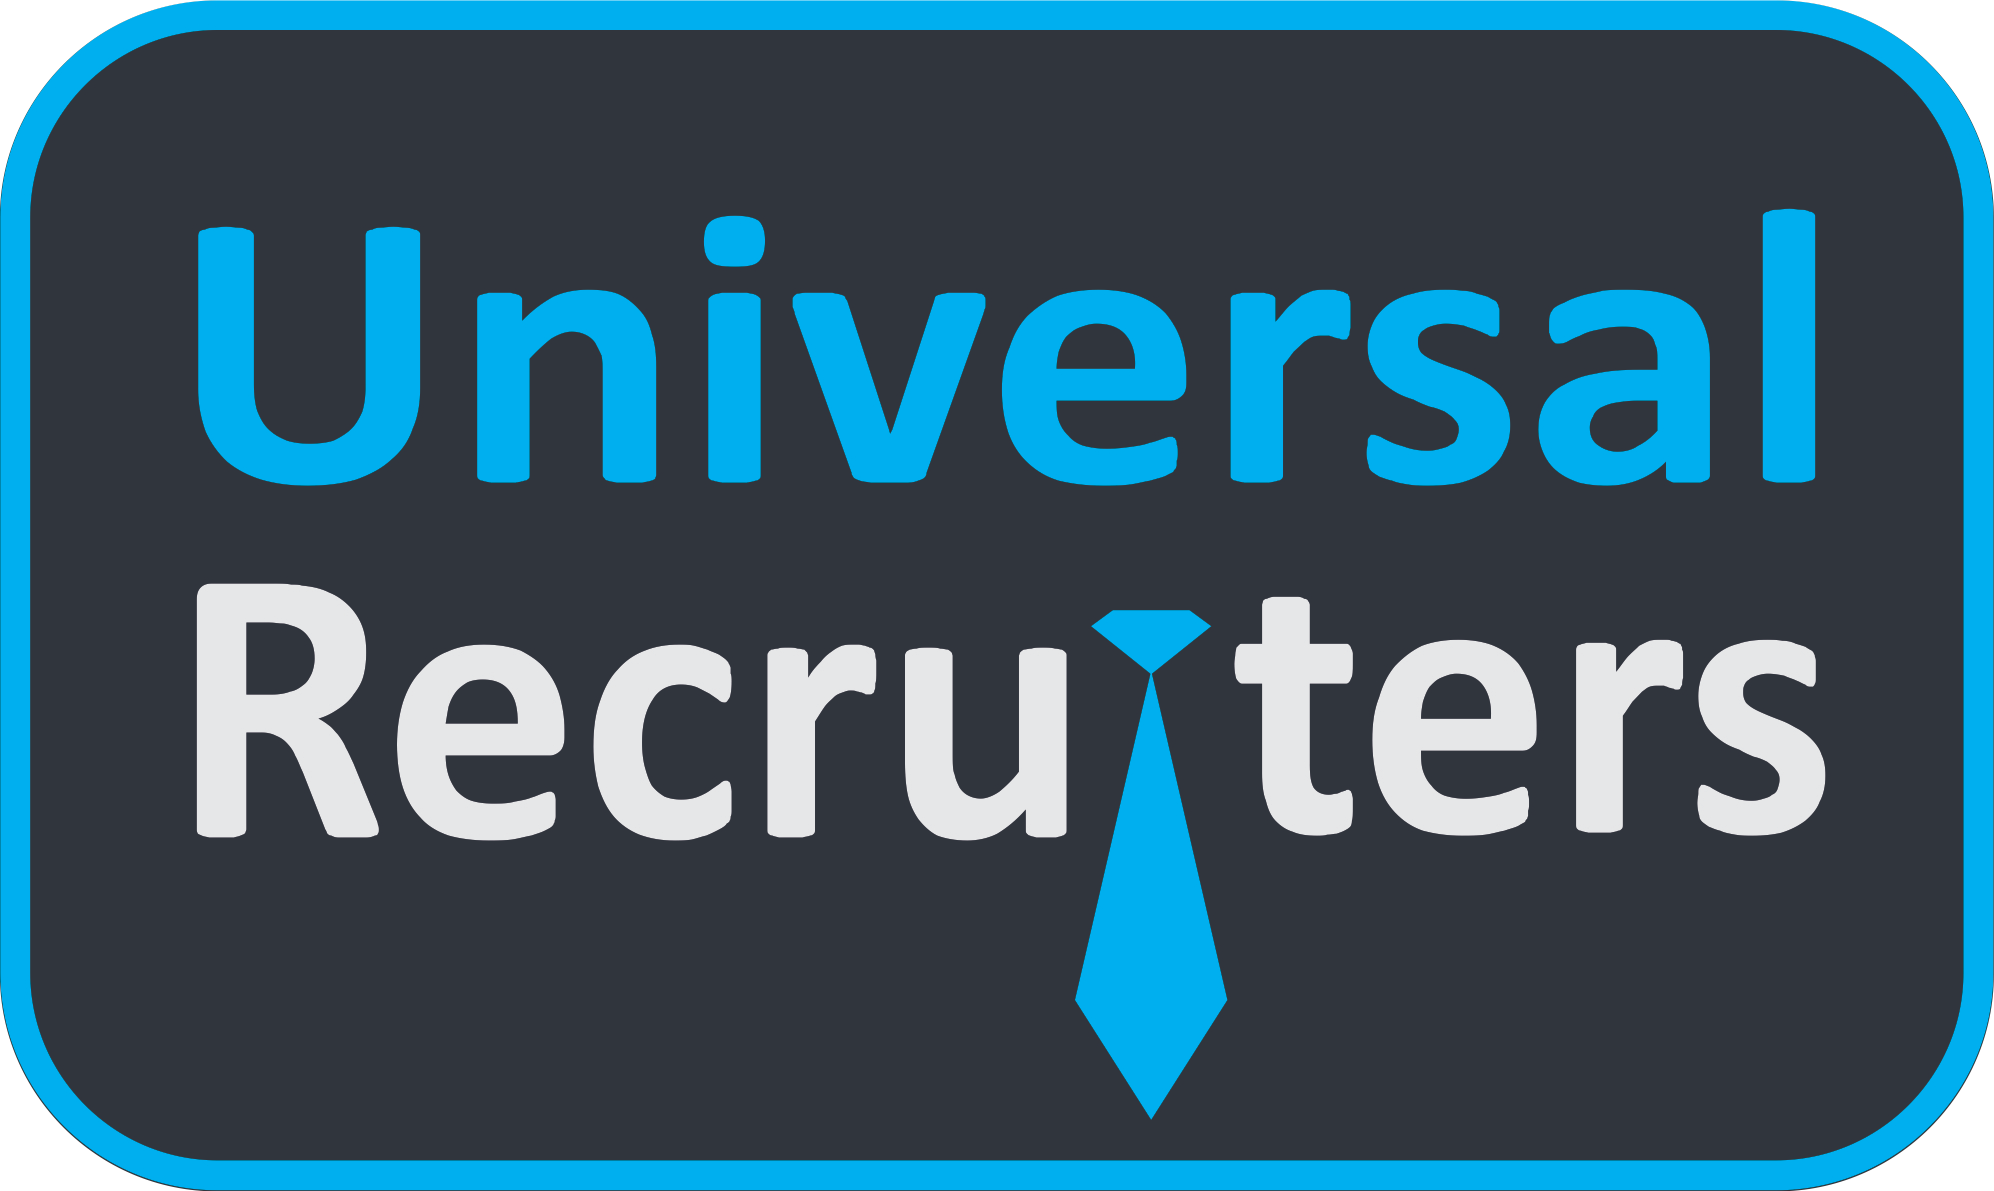 Universal Recruiters – Global Executive Search Recruitment Staffing Agency